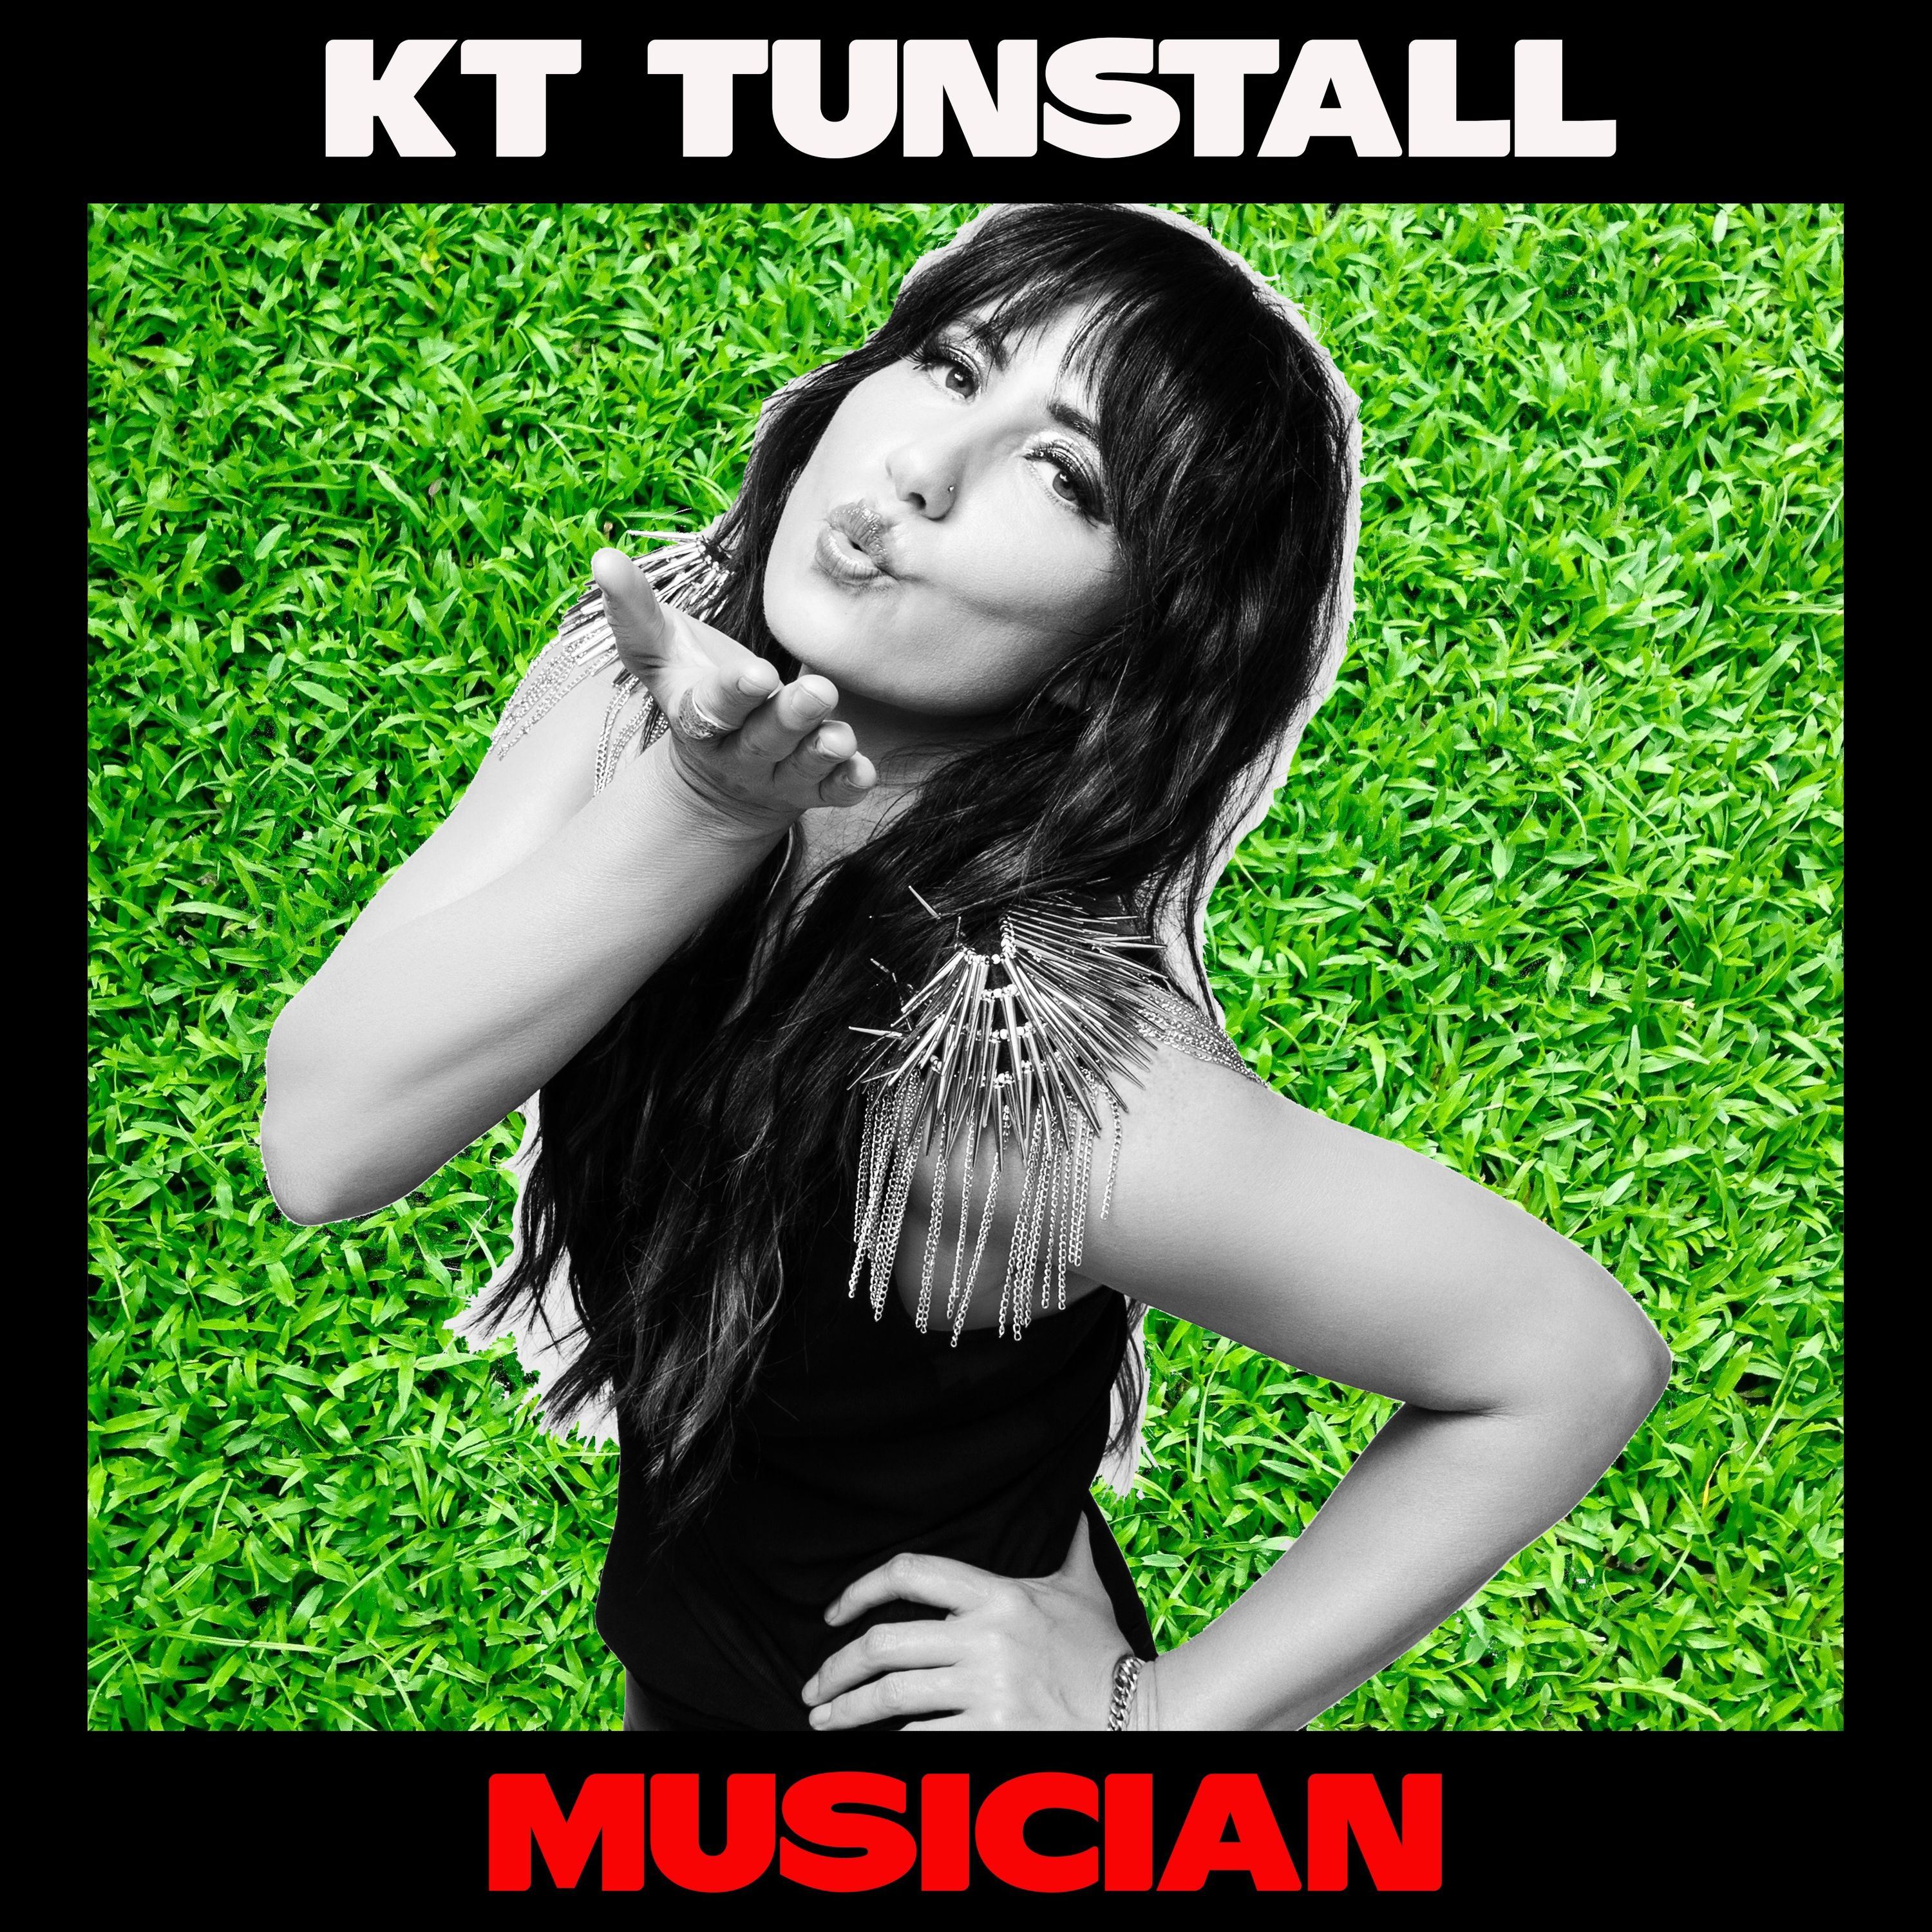 KT Tunstall: The Land of I Don't Give a Fuck